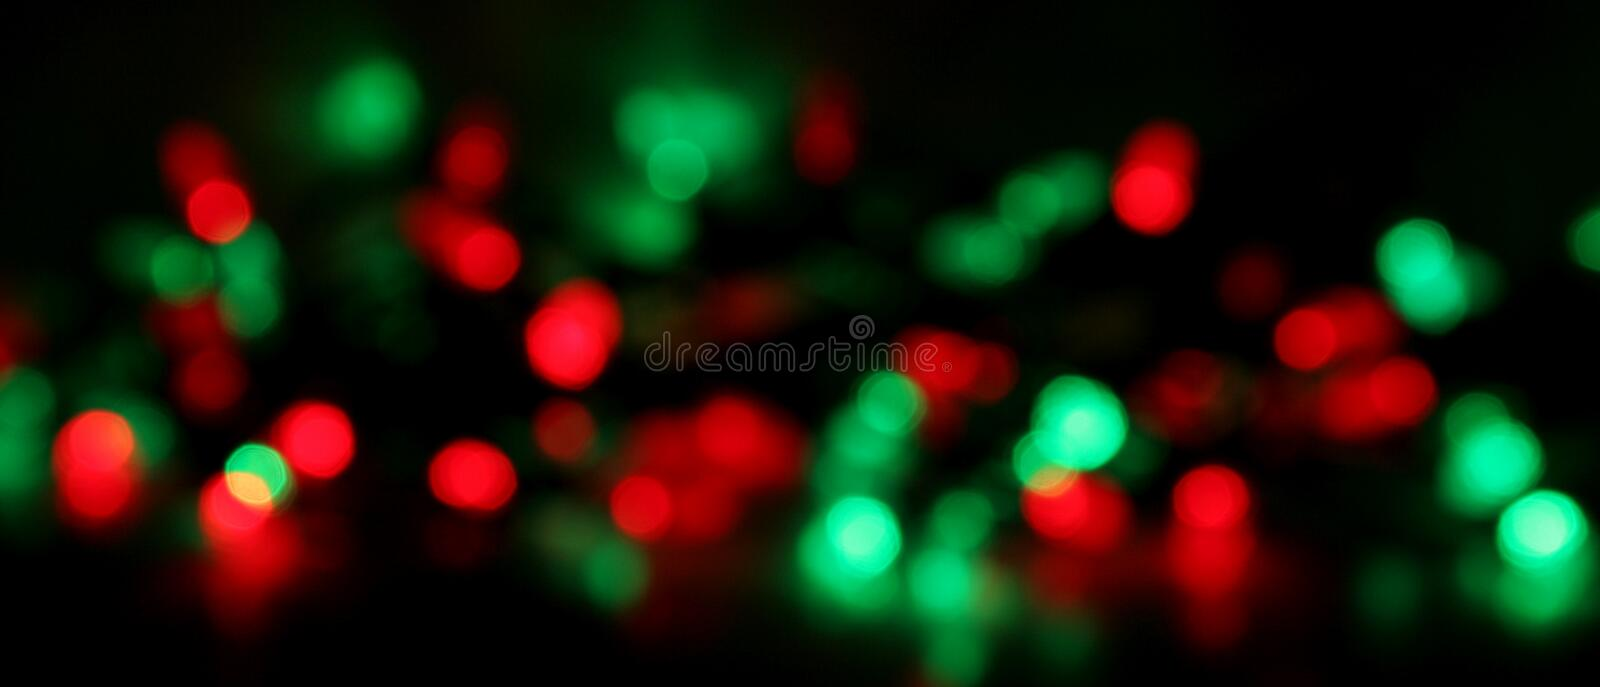 Christmas Light Blur Background Royalty Free Stock Images